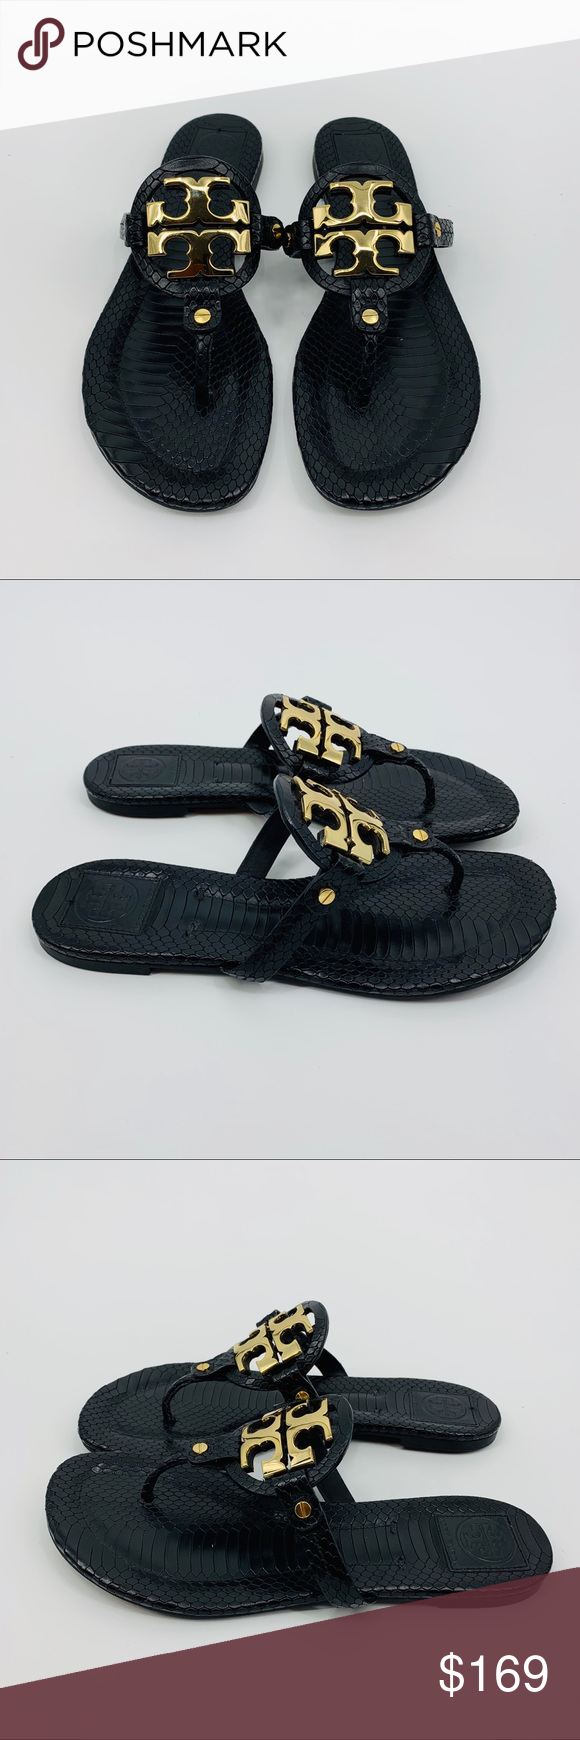 be14795b3e5d Tory Burch Vitraux Snake Print Miller 2 Sandals This is a pair of Tory  Burch Black